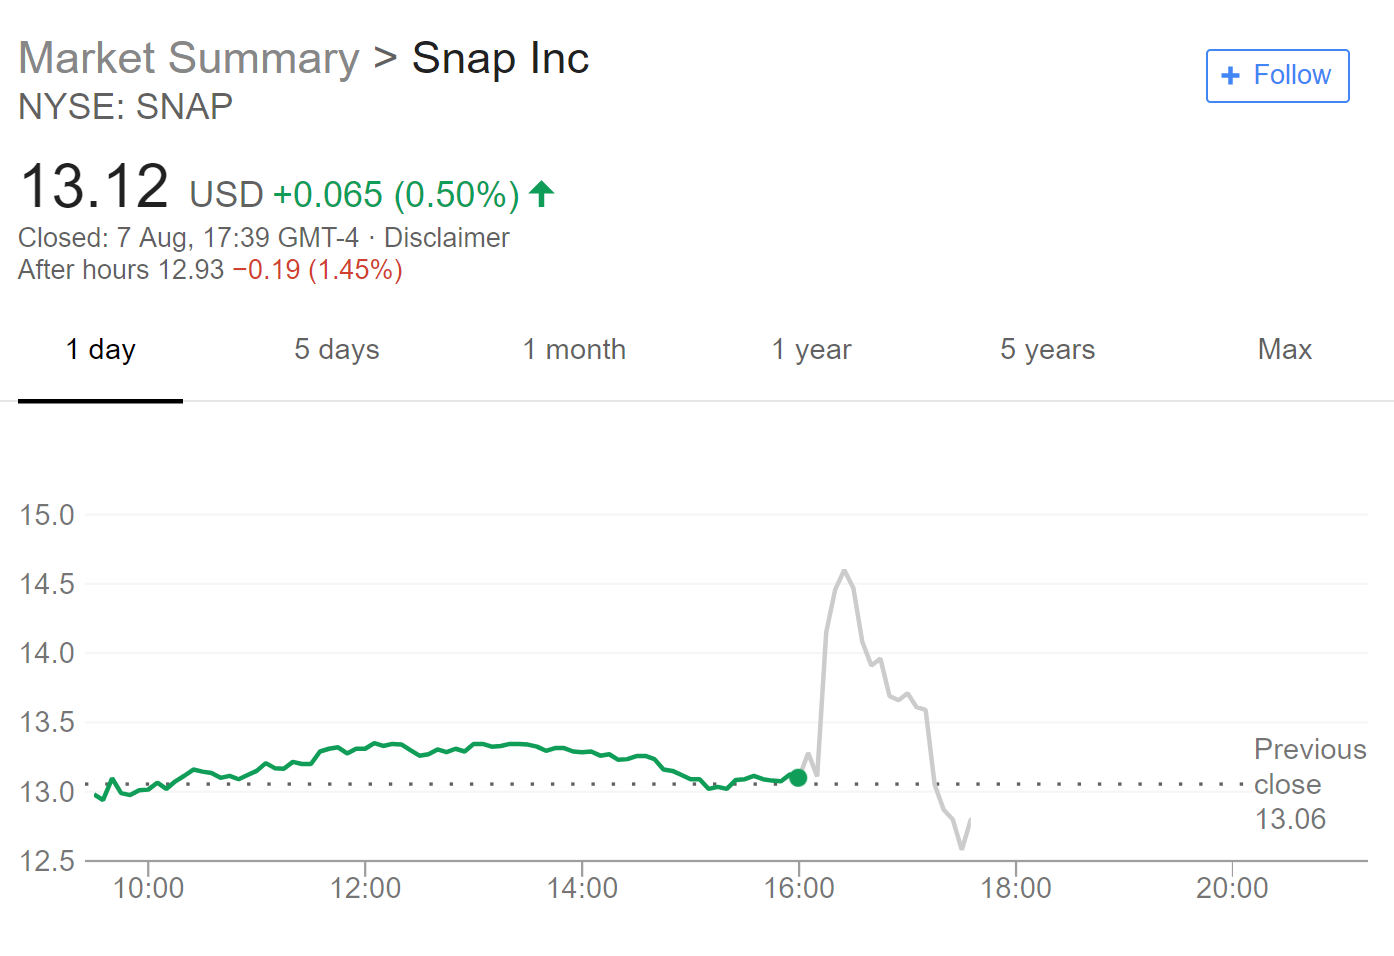 Snapchat's Controversial Redesign Blamed for Loss Millions of Active Users